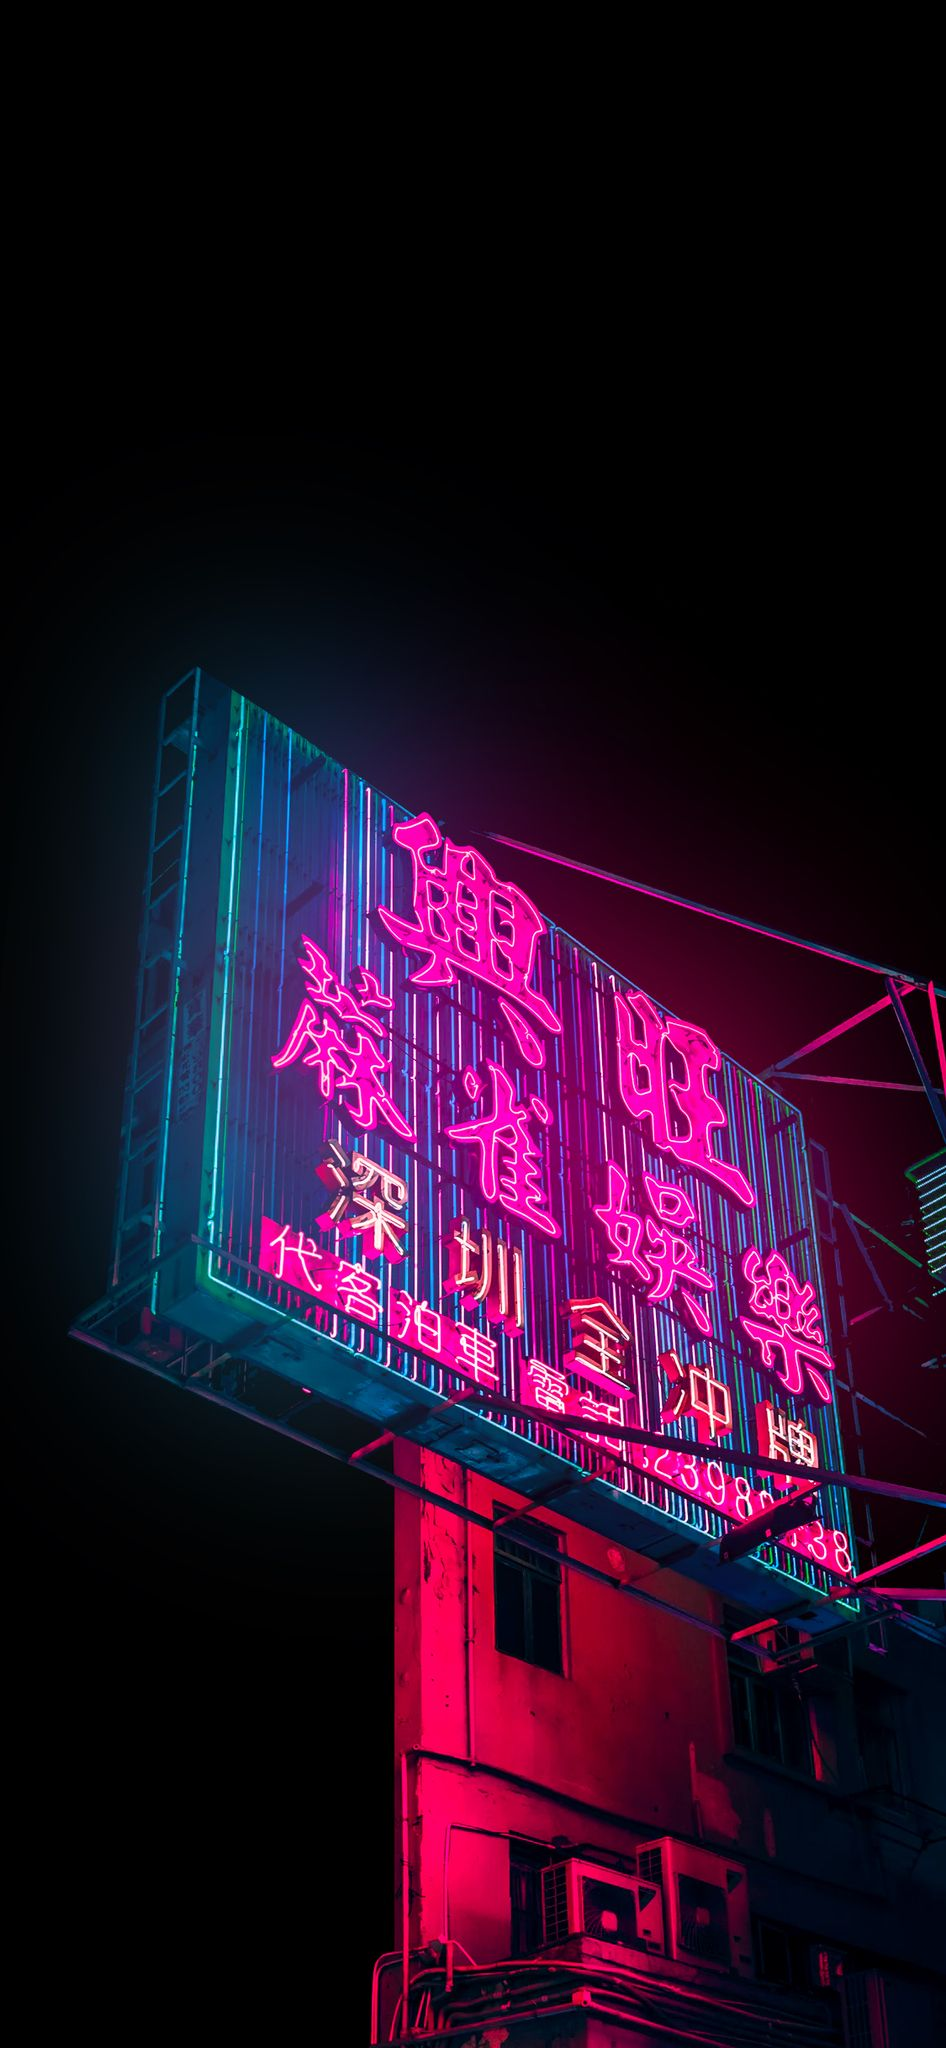 Pin by Nick on Psychedelic   Wallpaper iphone neon, Neon ...